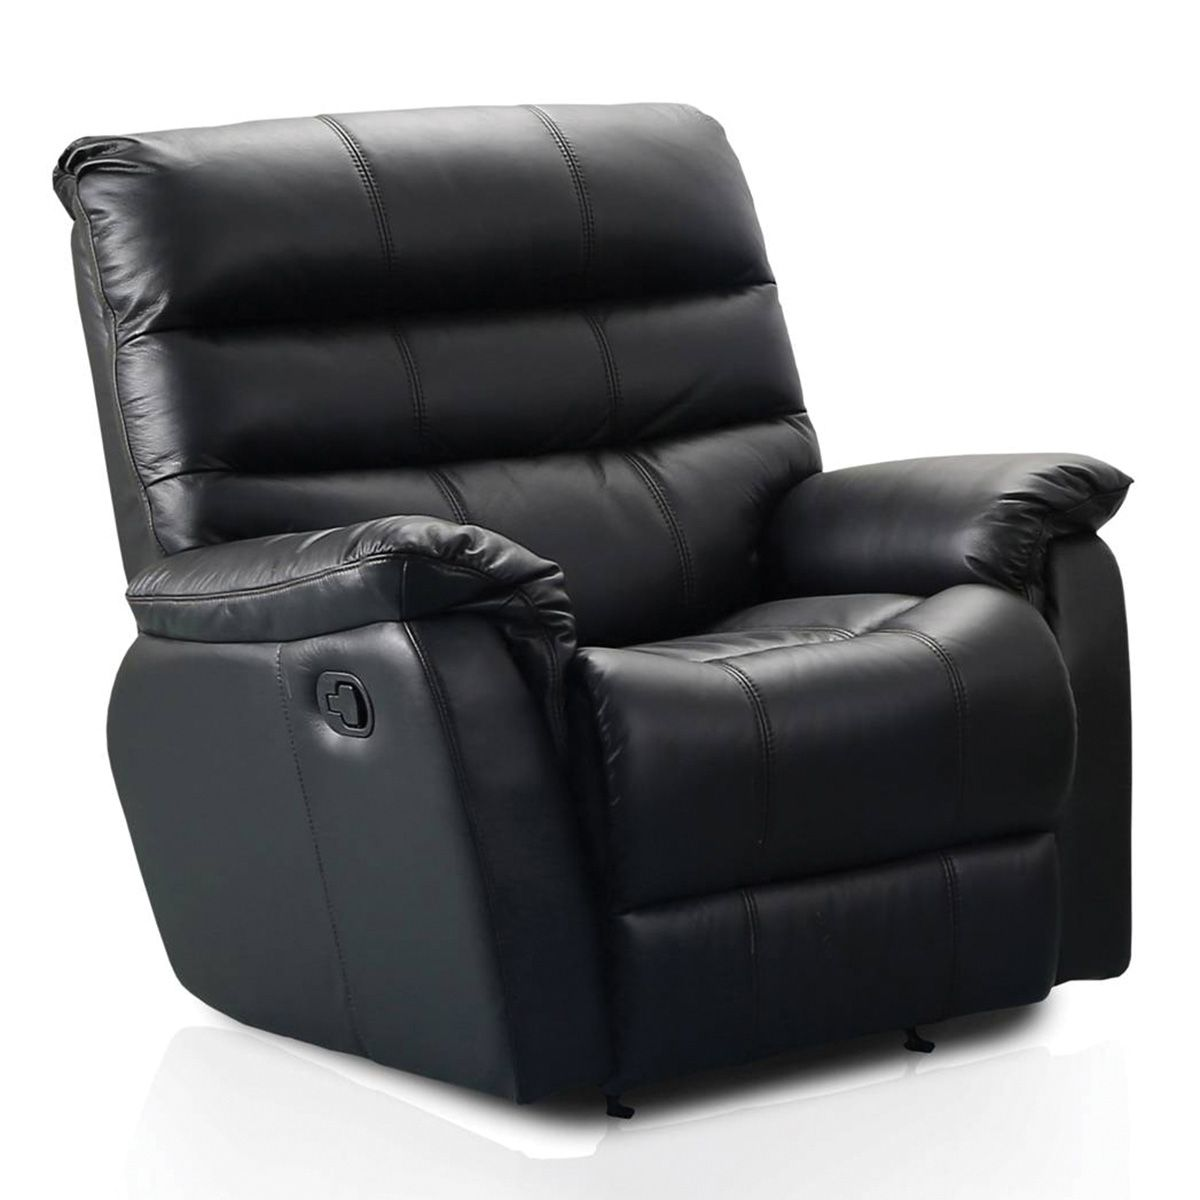 The dump offers affordable living room furniture such as sofas sectionals and recliners in a variety of designs from traditional to contemporary